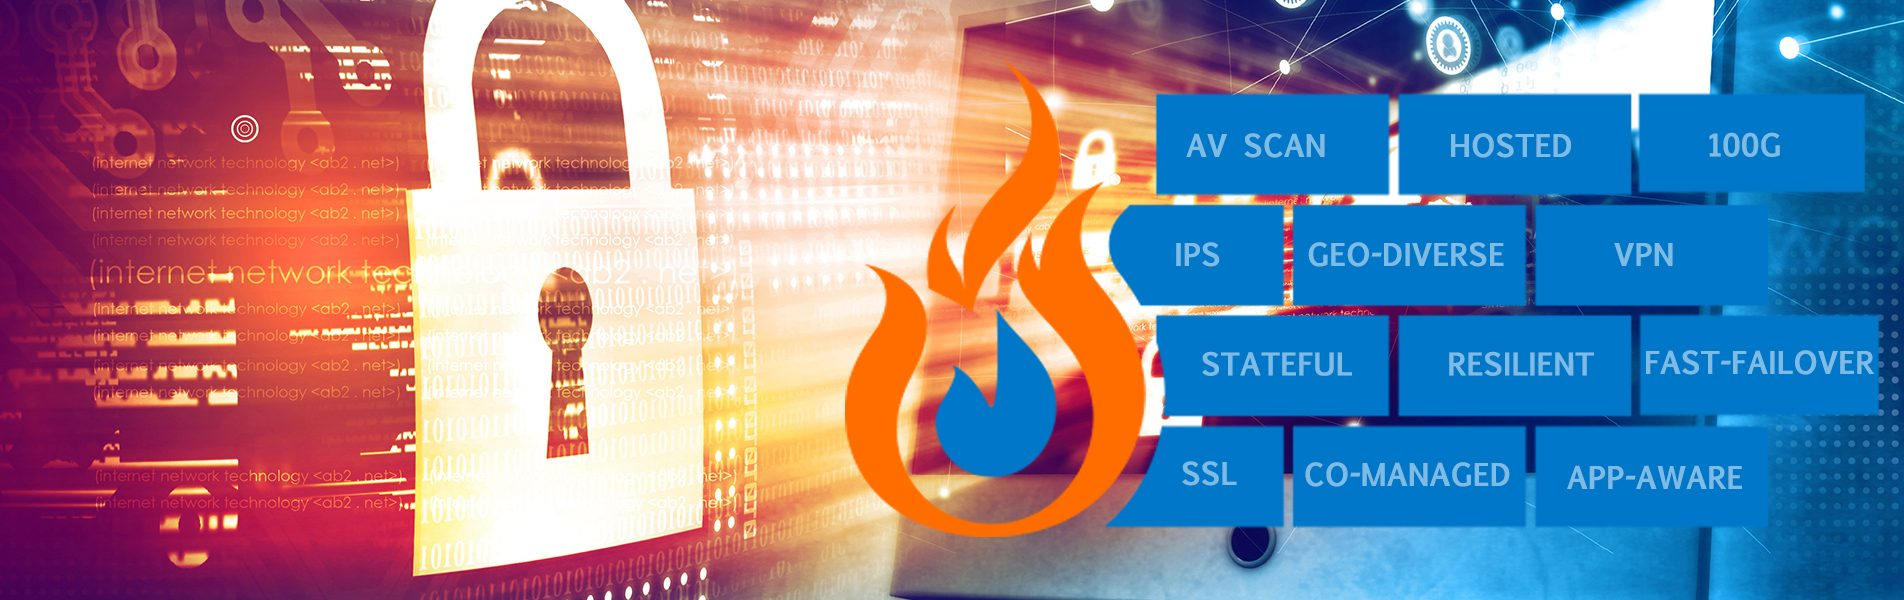 Graphic background with image of a lock, fire graphic with bricks that read: AV Scan, Hosted, 100G, IPS, Geo-diverse, VPN, Stateful, Resilient, Fast-Failover, SSL, Co-managed, App-aware